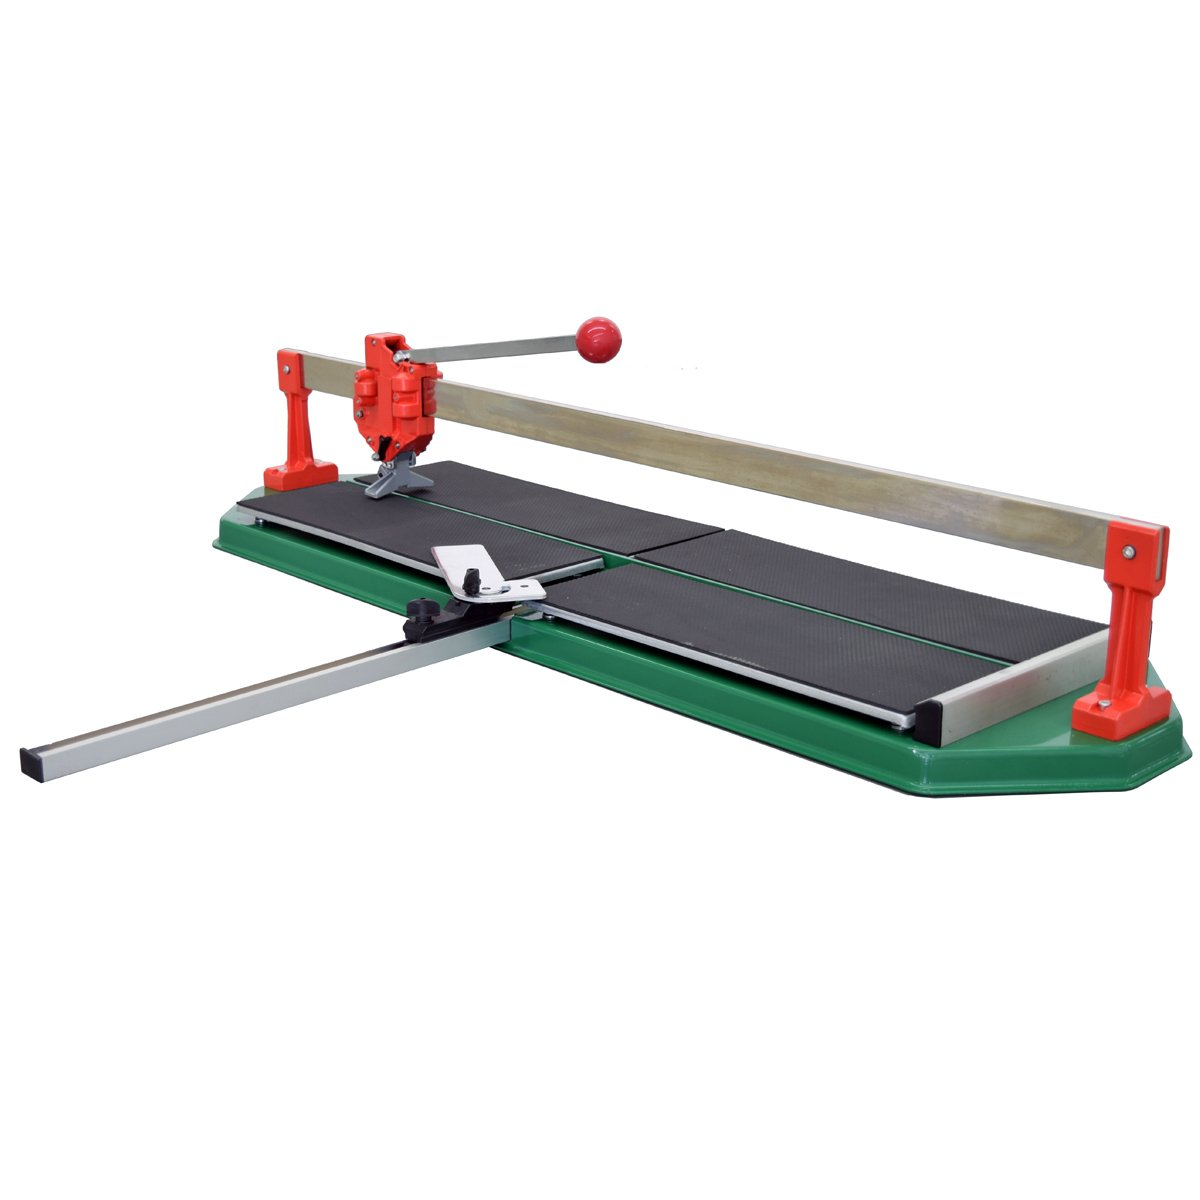 KSEIBI 291080 Professional Manual Ceramic Tile Cutter Italy Pattern (36Inch)